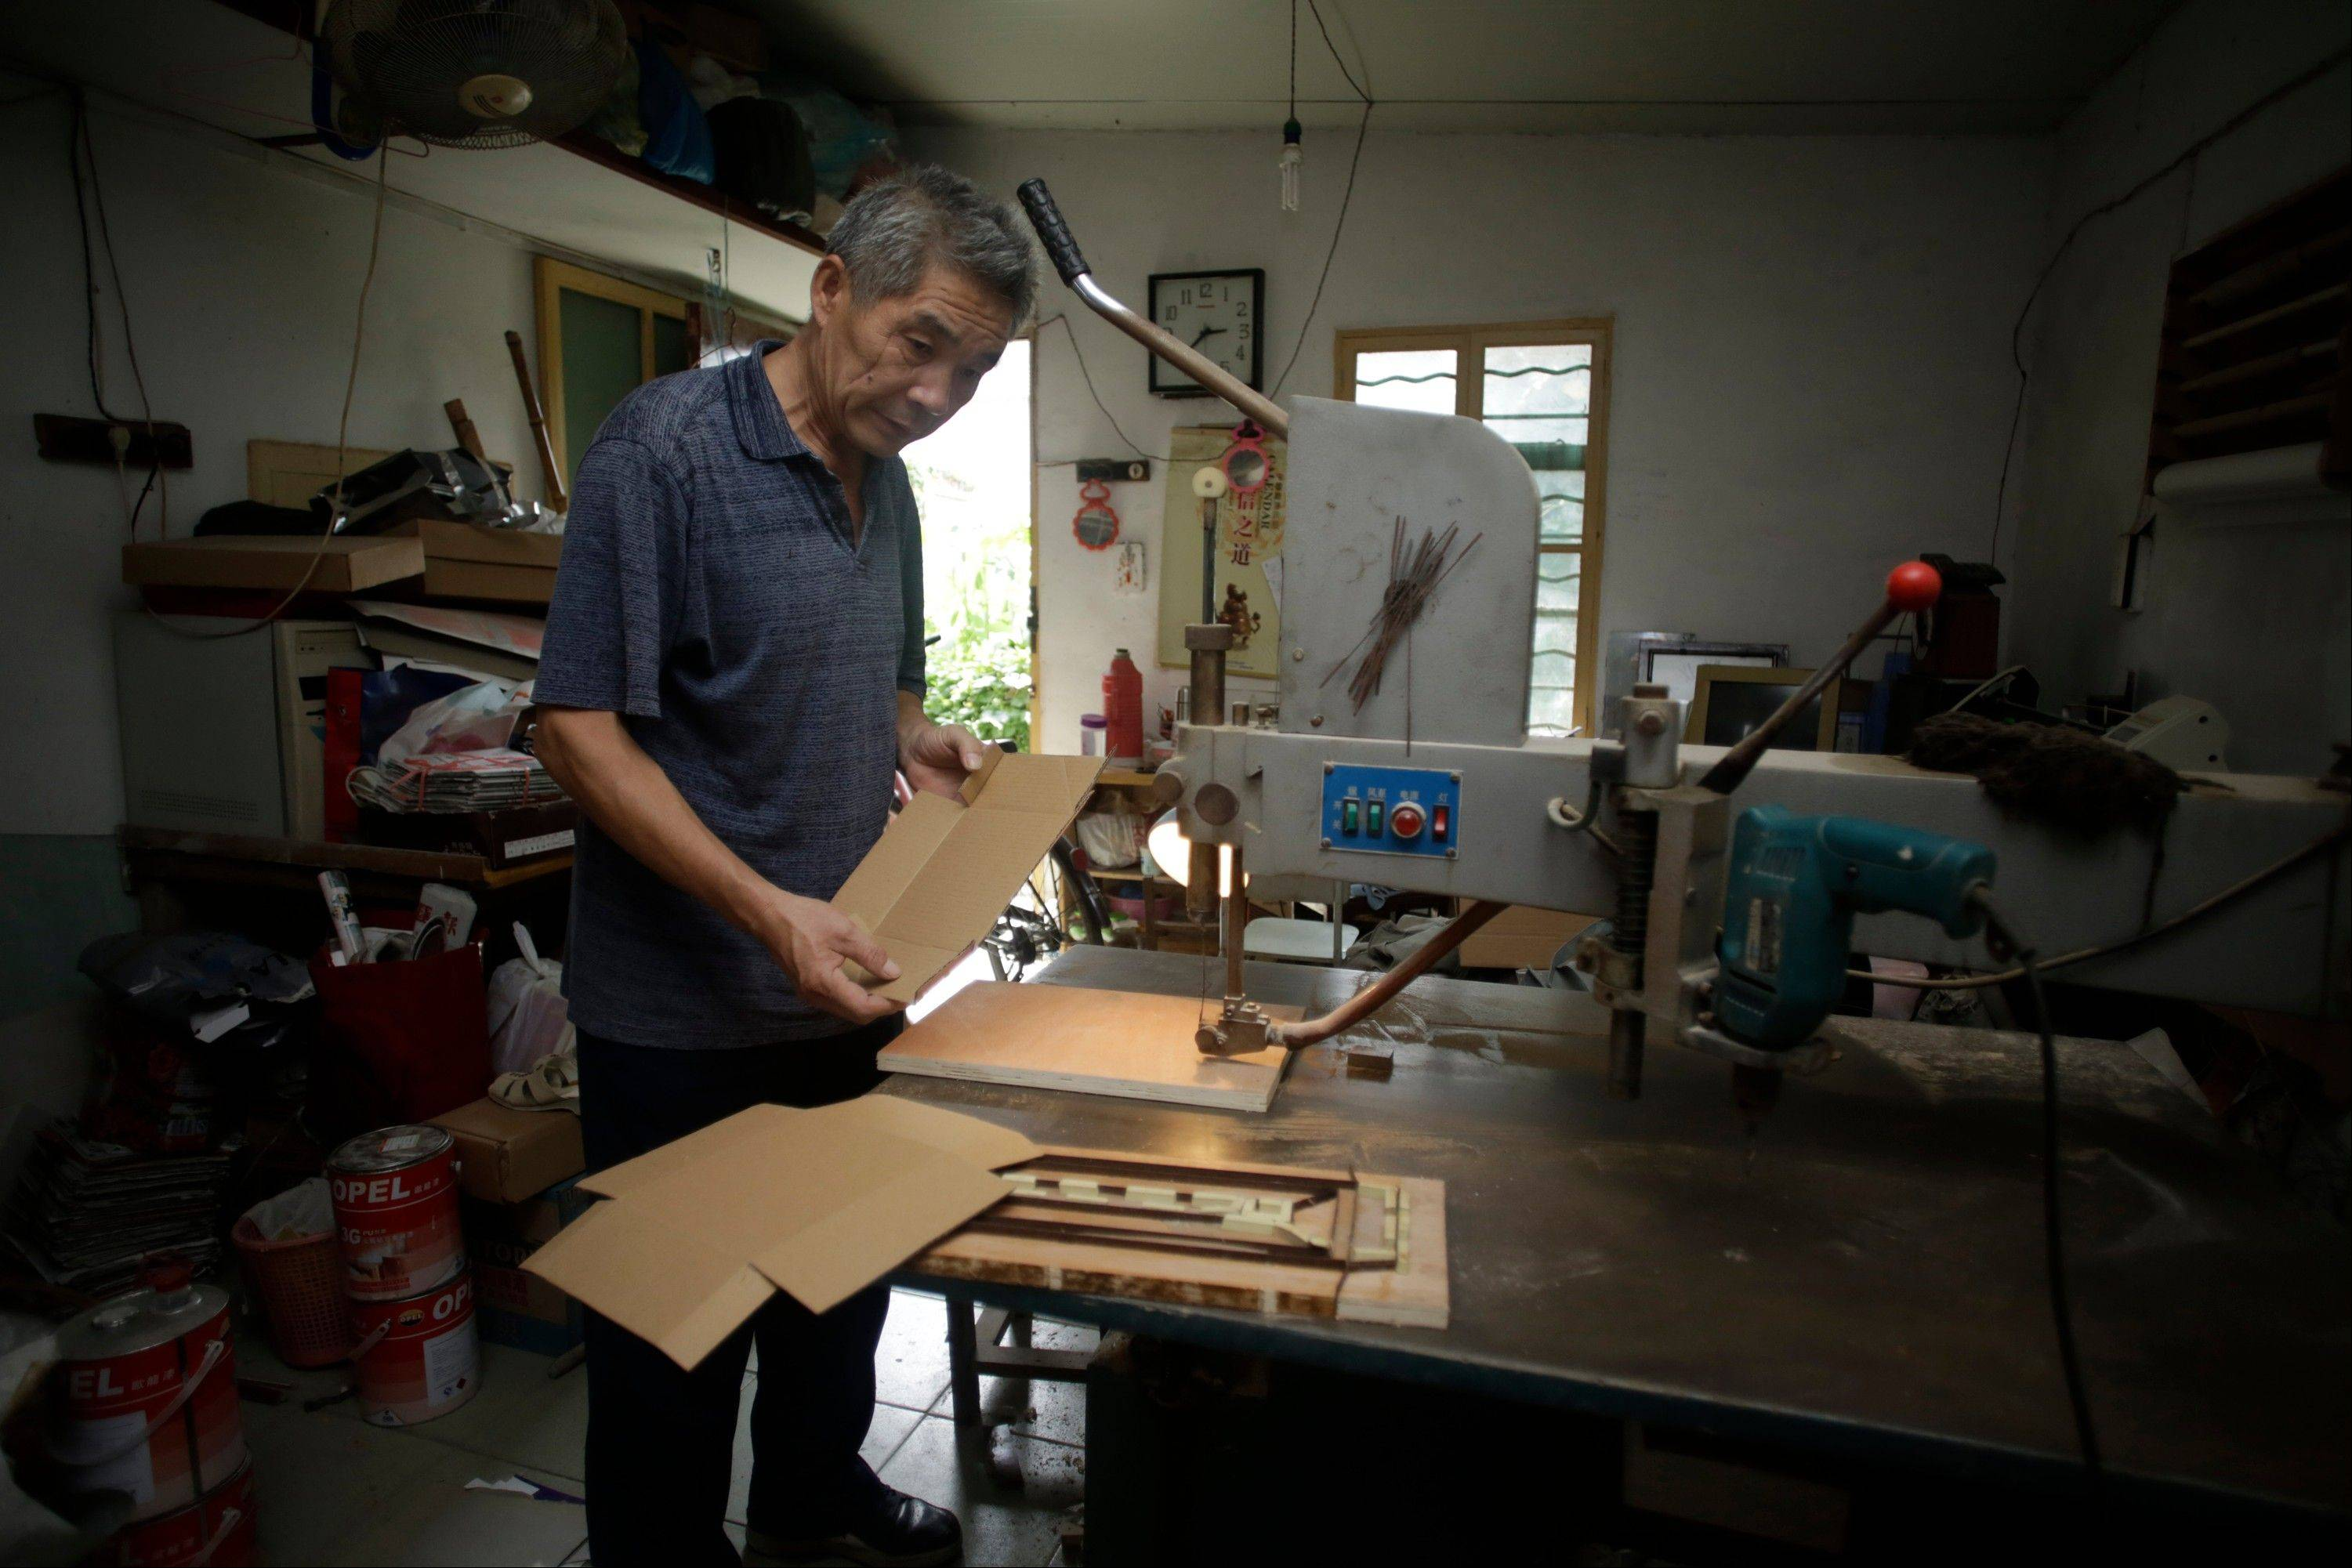 Dong Linhua, 59, works at his workshop in Shanghai, China. Dong, who worked in a state-owned clothing company while later being laid off, started a workshop that produces the molds of the paper box for the factories. He does not have a job now.